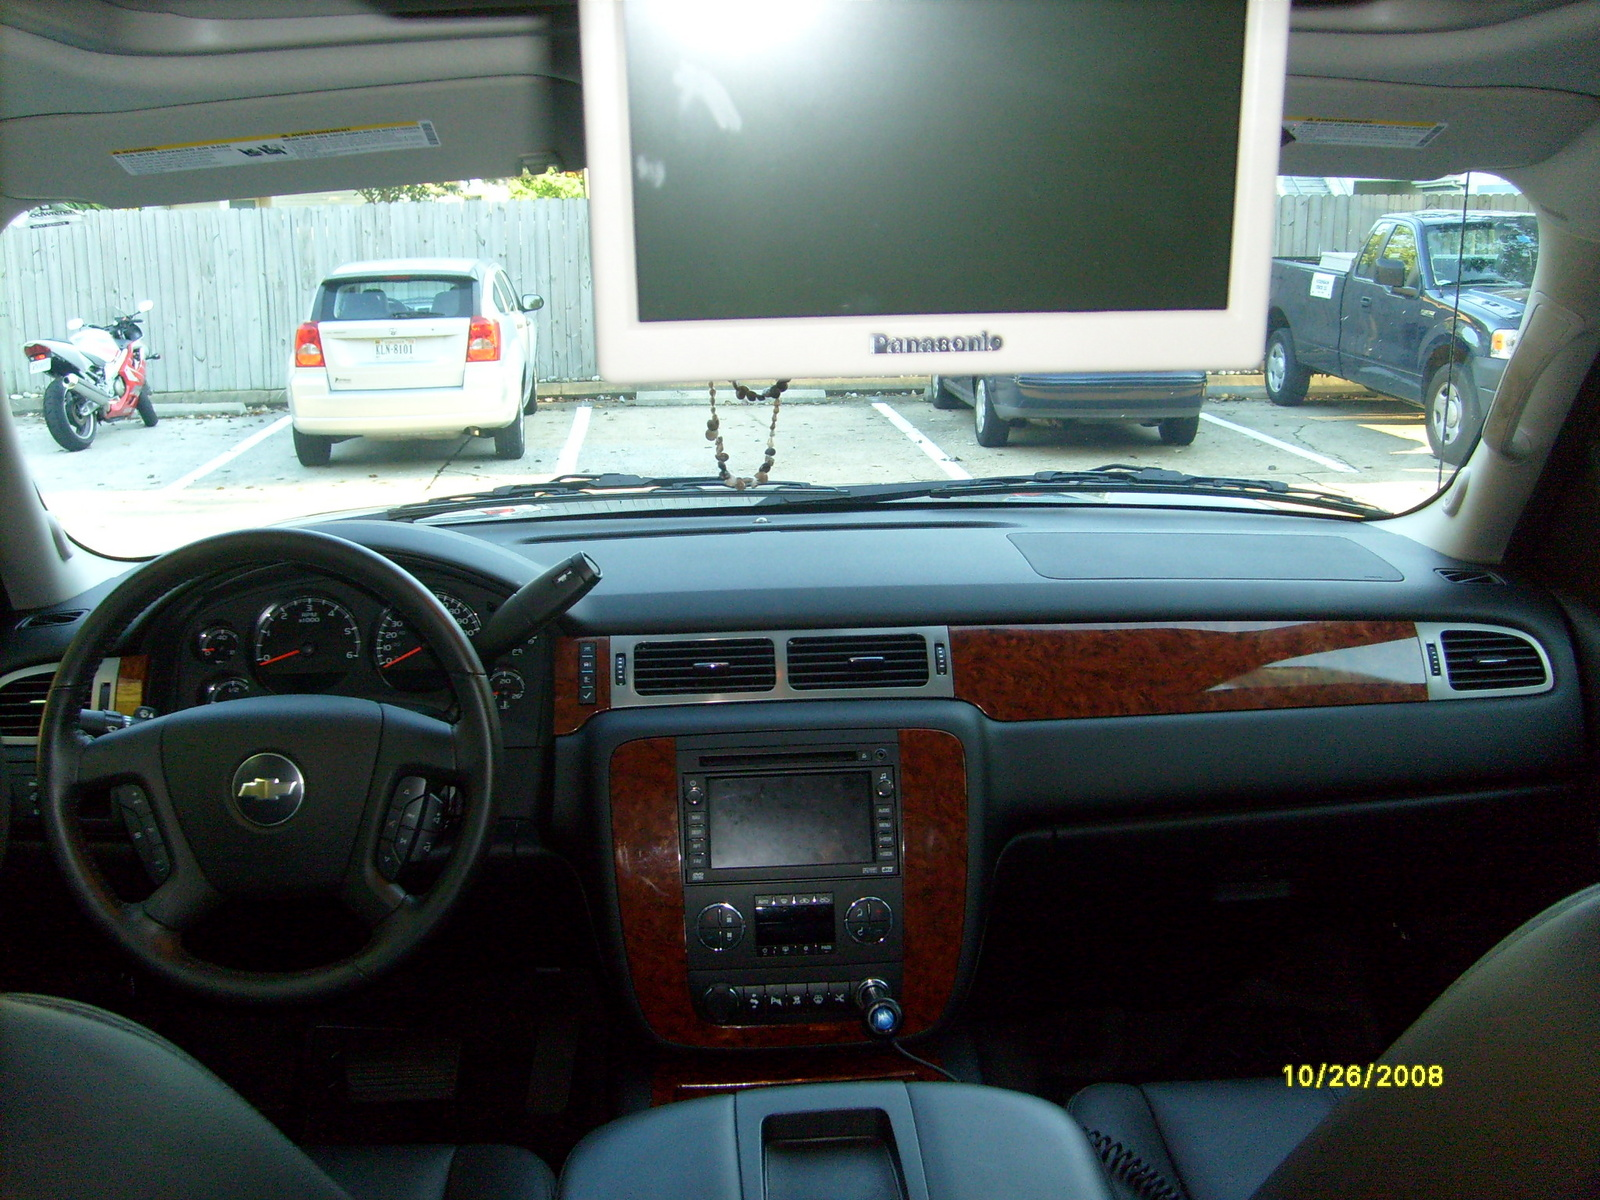 2004 Chevy Avalanche Interior Car Interior Design